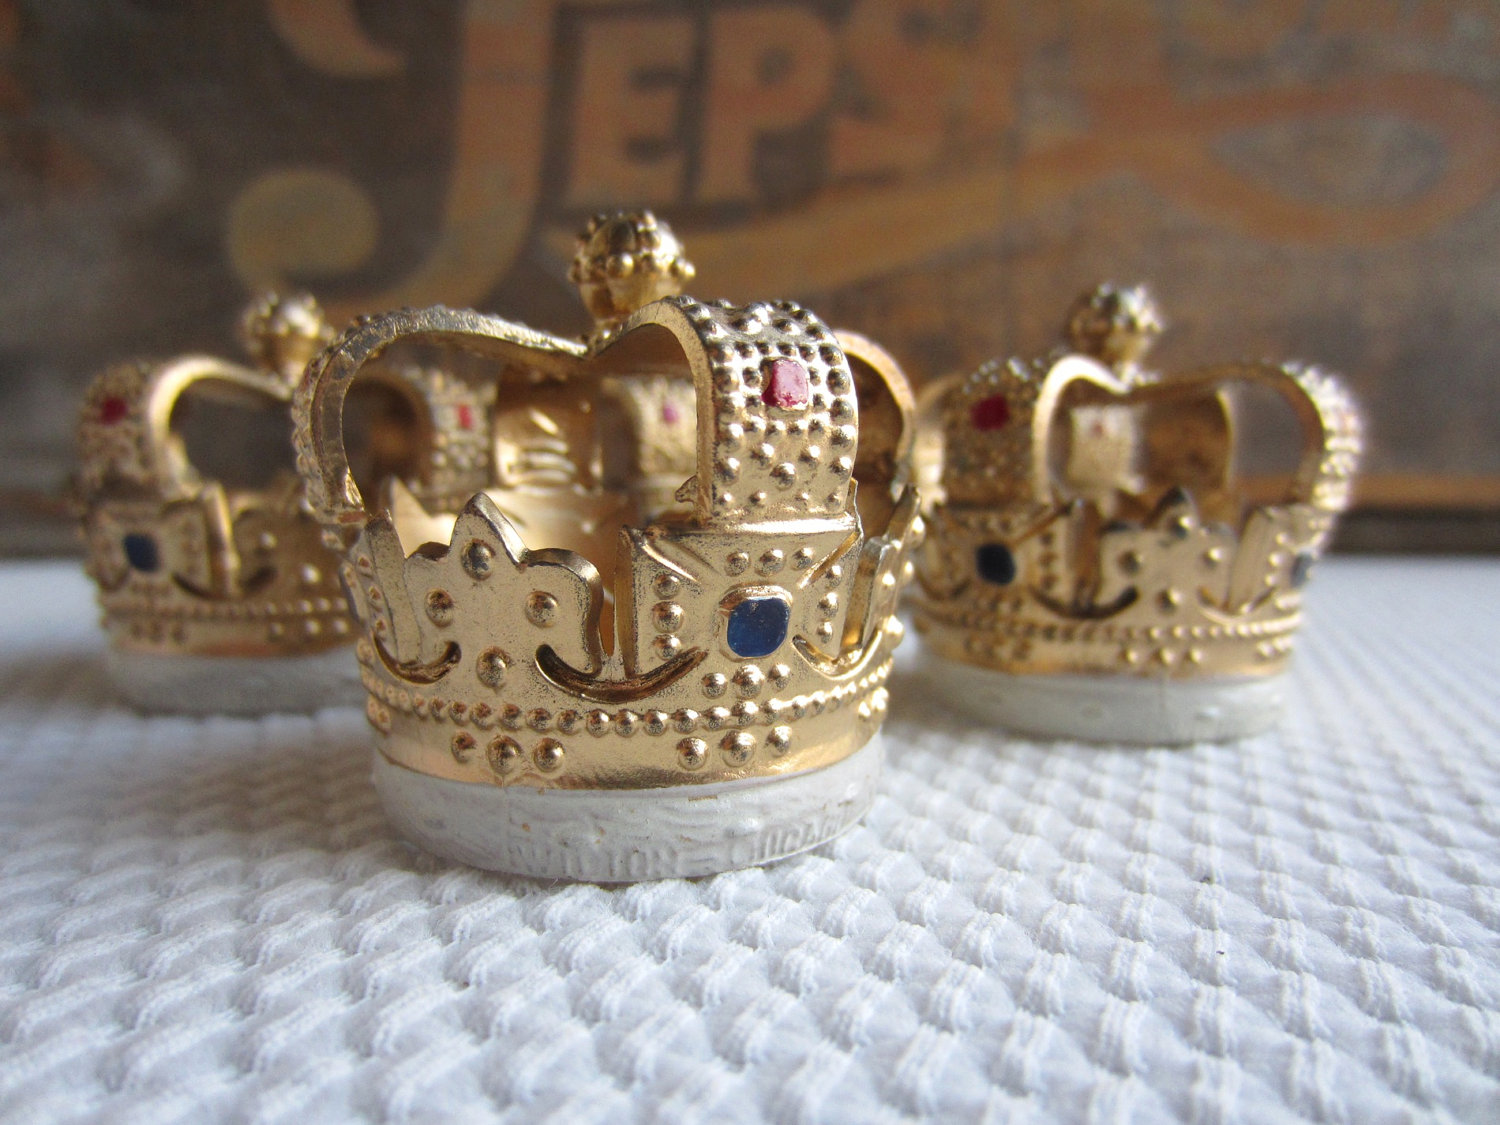 king crown cake topper crown wallpaper hd imageso org